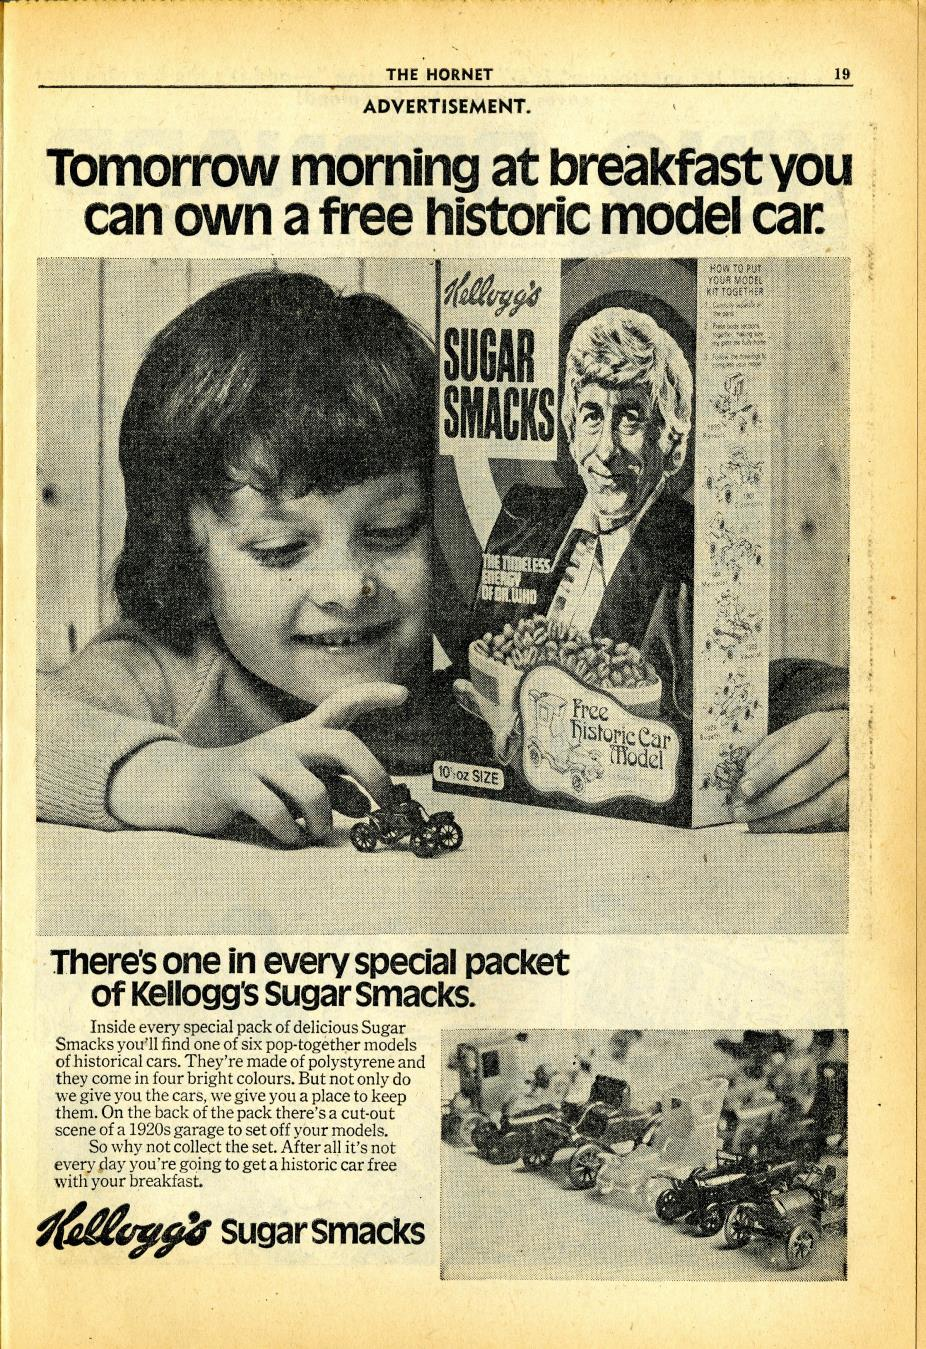 Ad. for Kellog's Sugar Smacks historic car models promotion, in Hornet no. 447, 1 April 1972